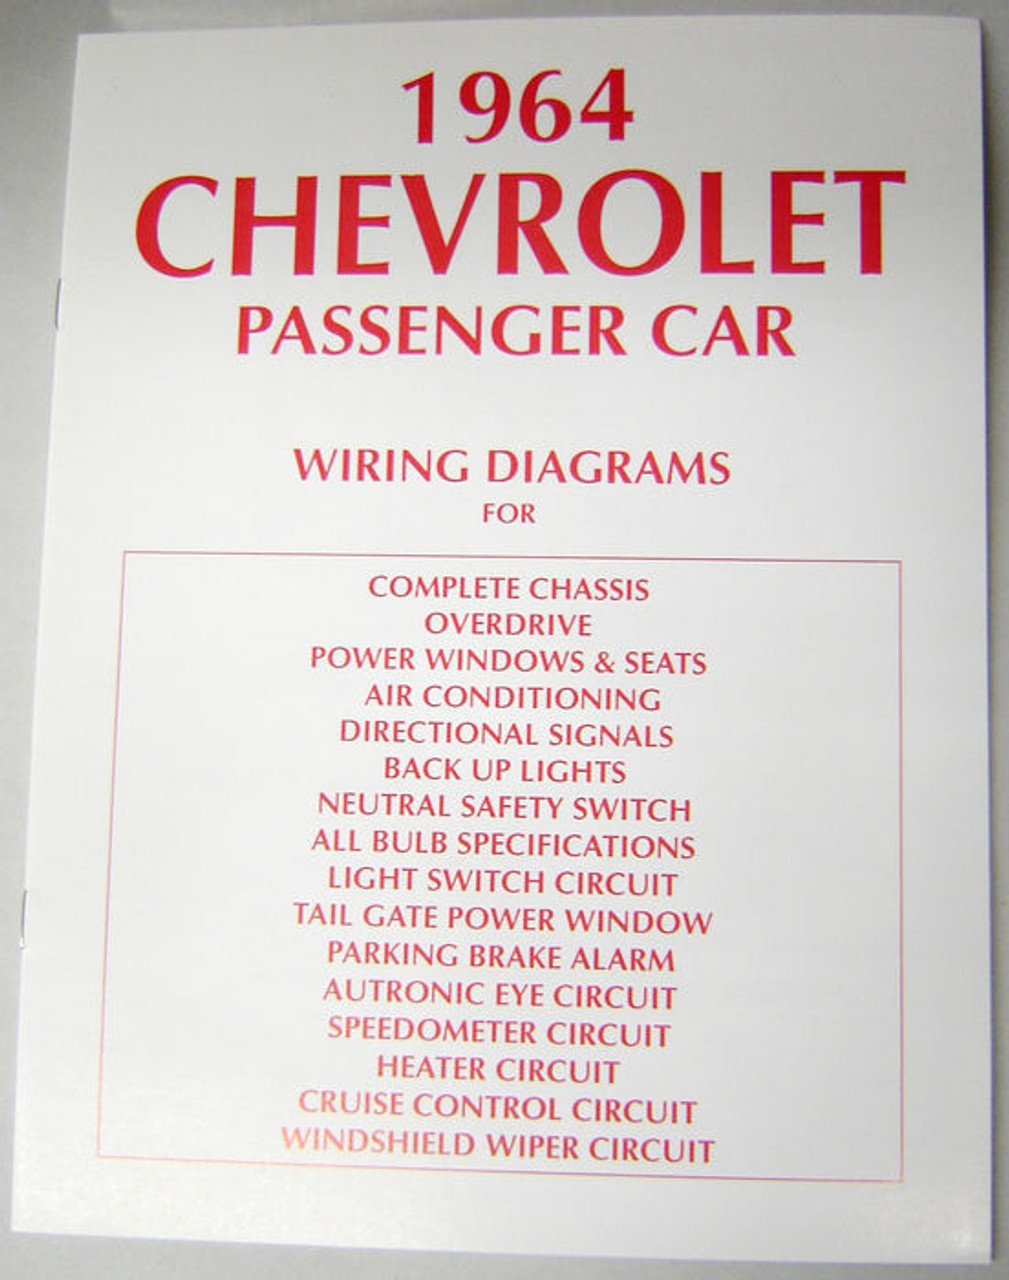 L1018_zpspntr2k0p__81627.1443480715?c=2&imbypass=on 64 1964 chevy impala electrical wiring diagram manual i 5